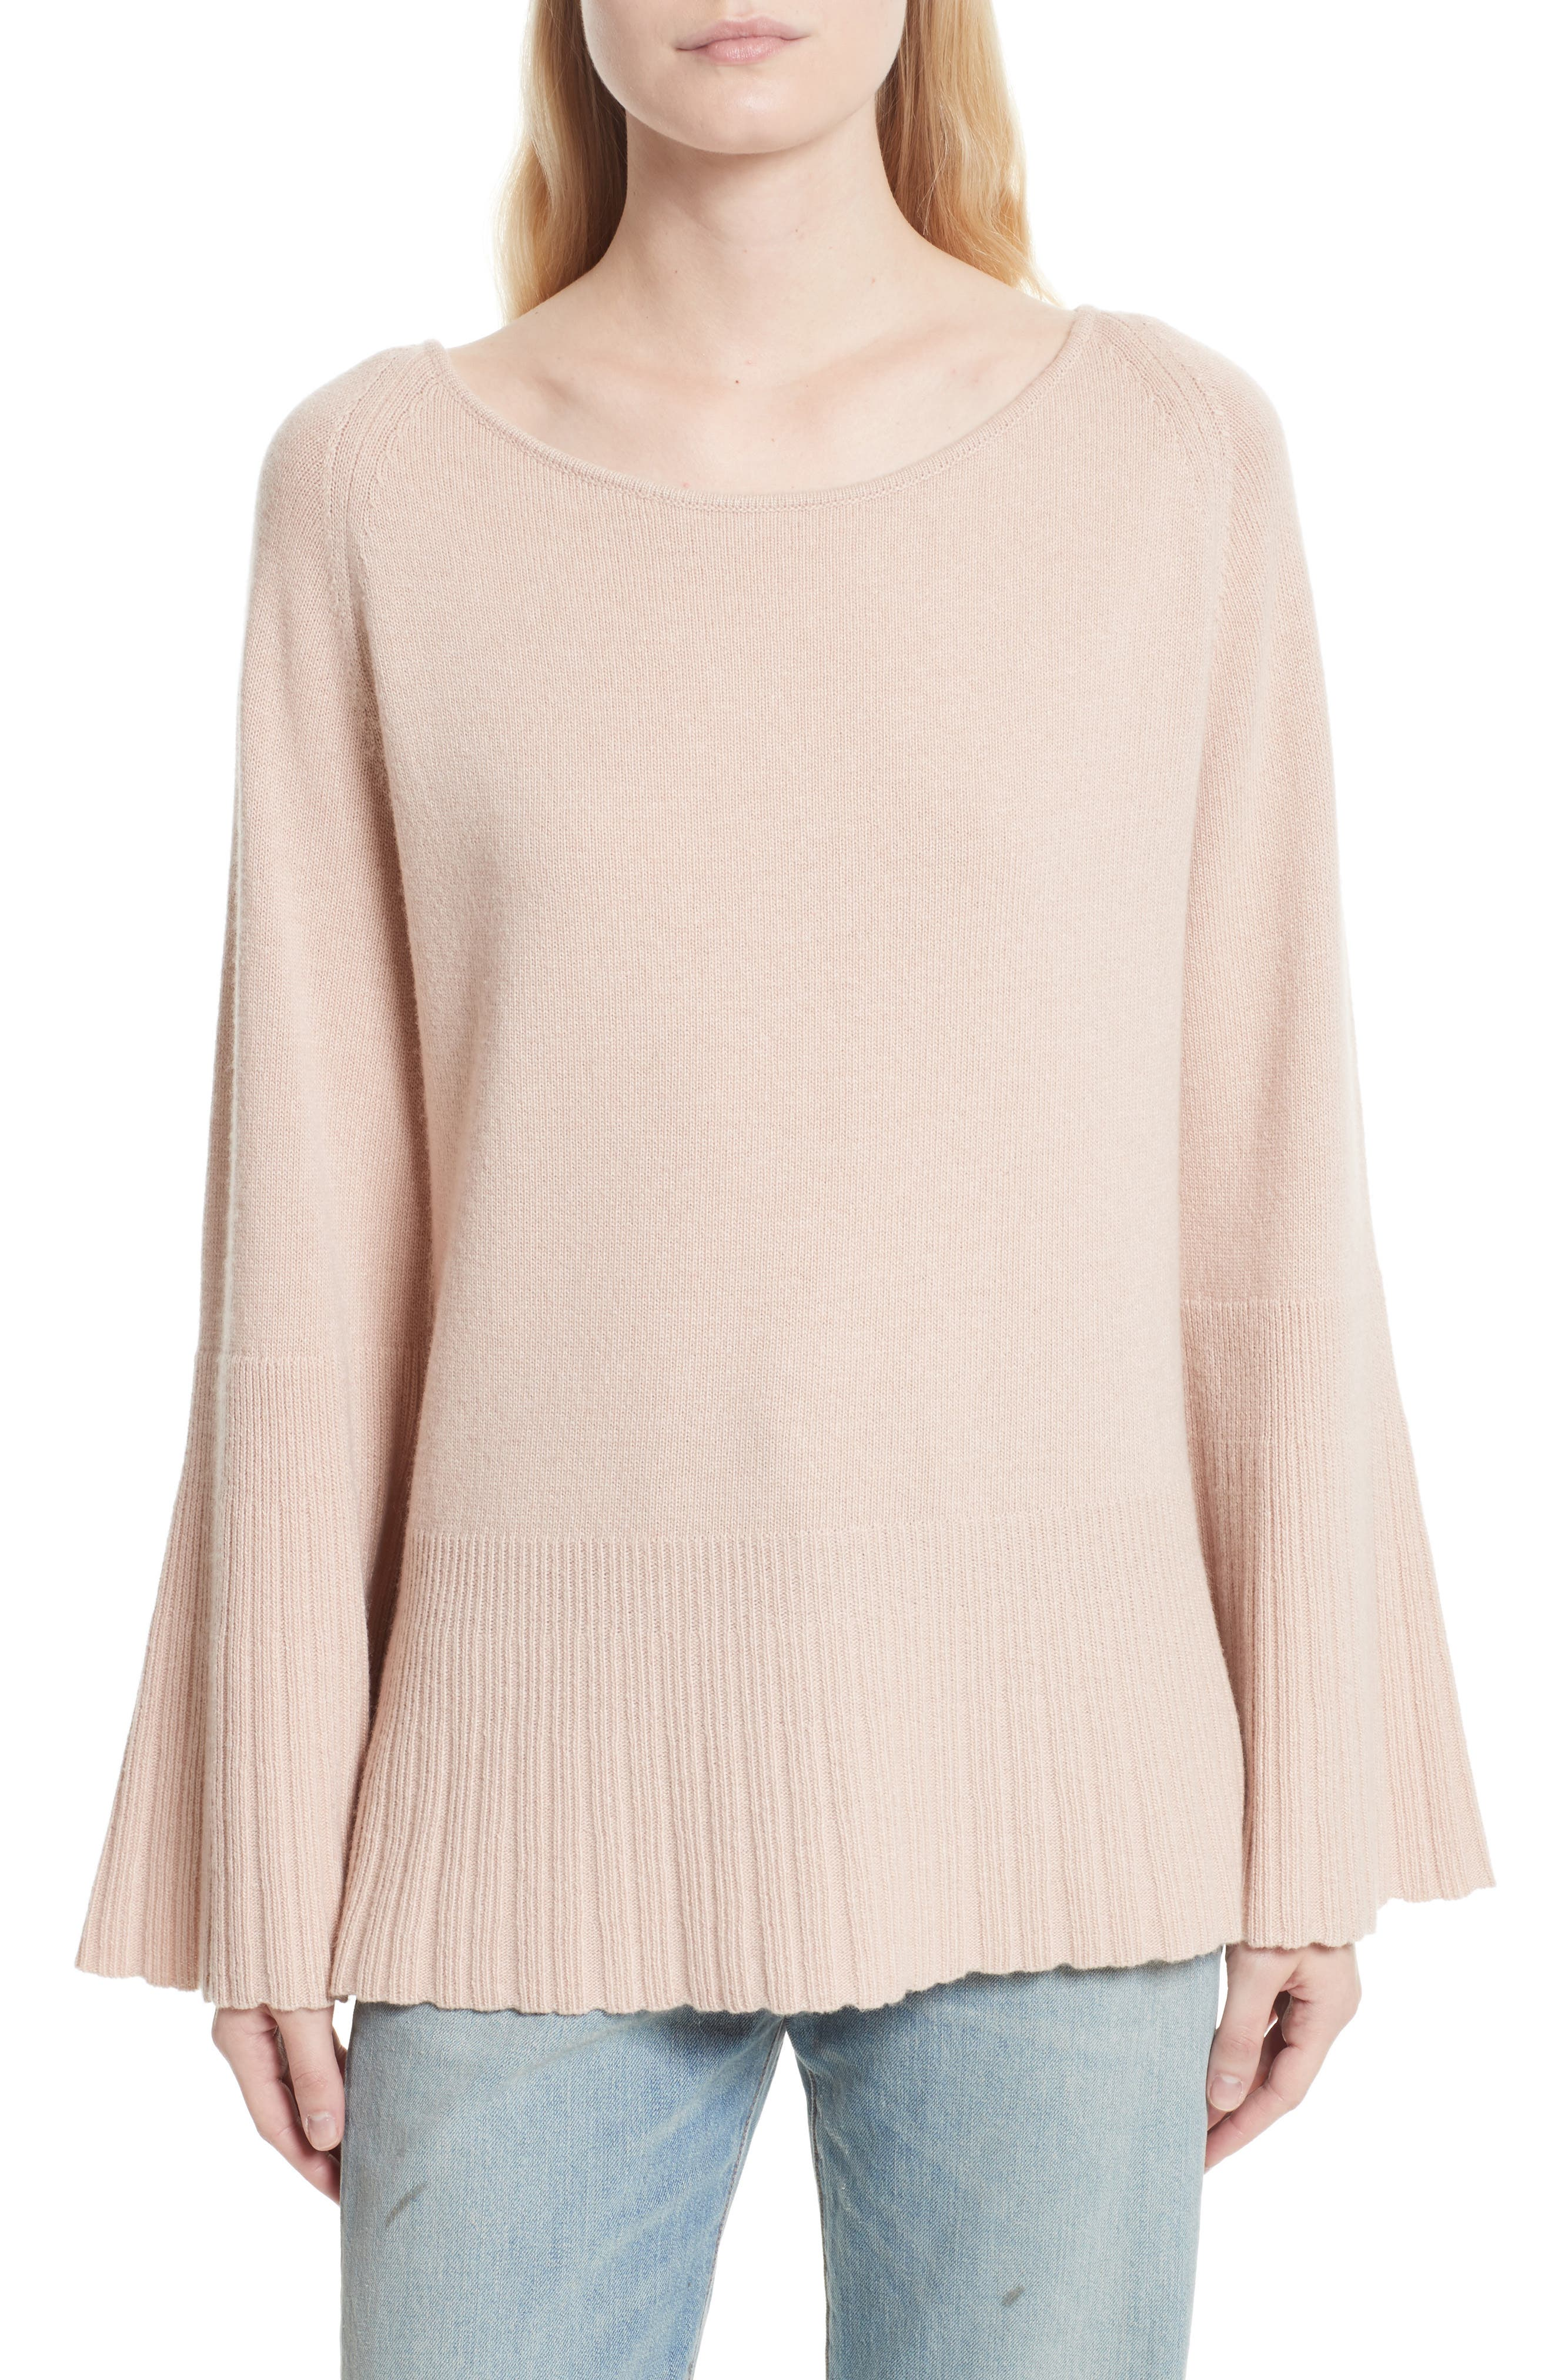 Clarette Bell Sleeve Sweater,                         Main,                         color, Biscuit